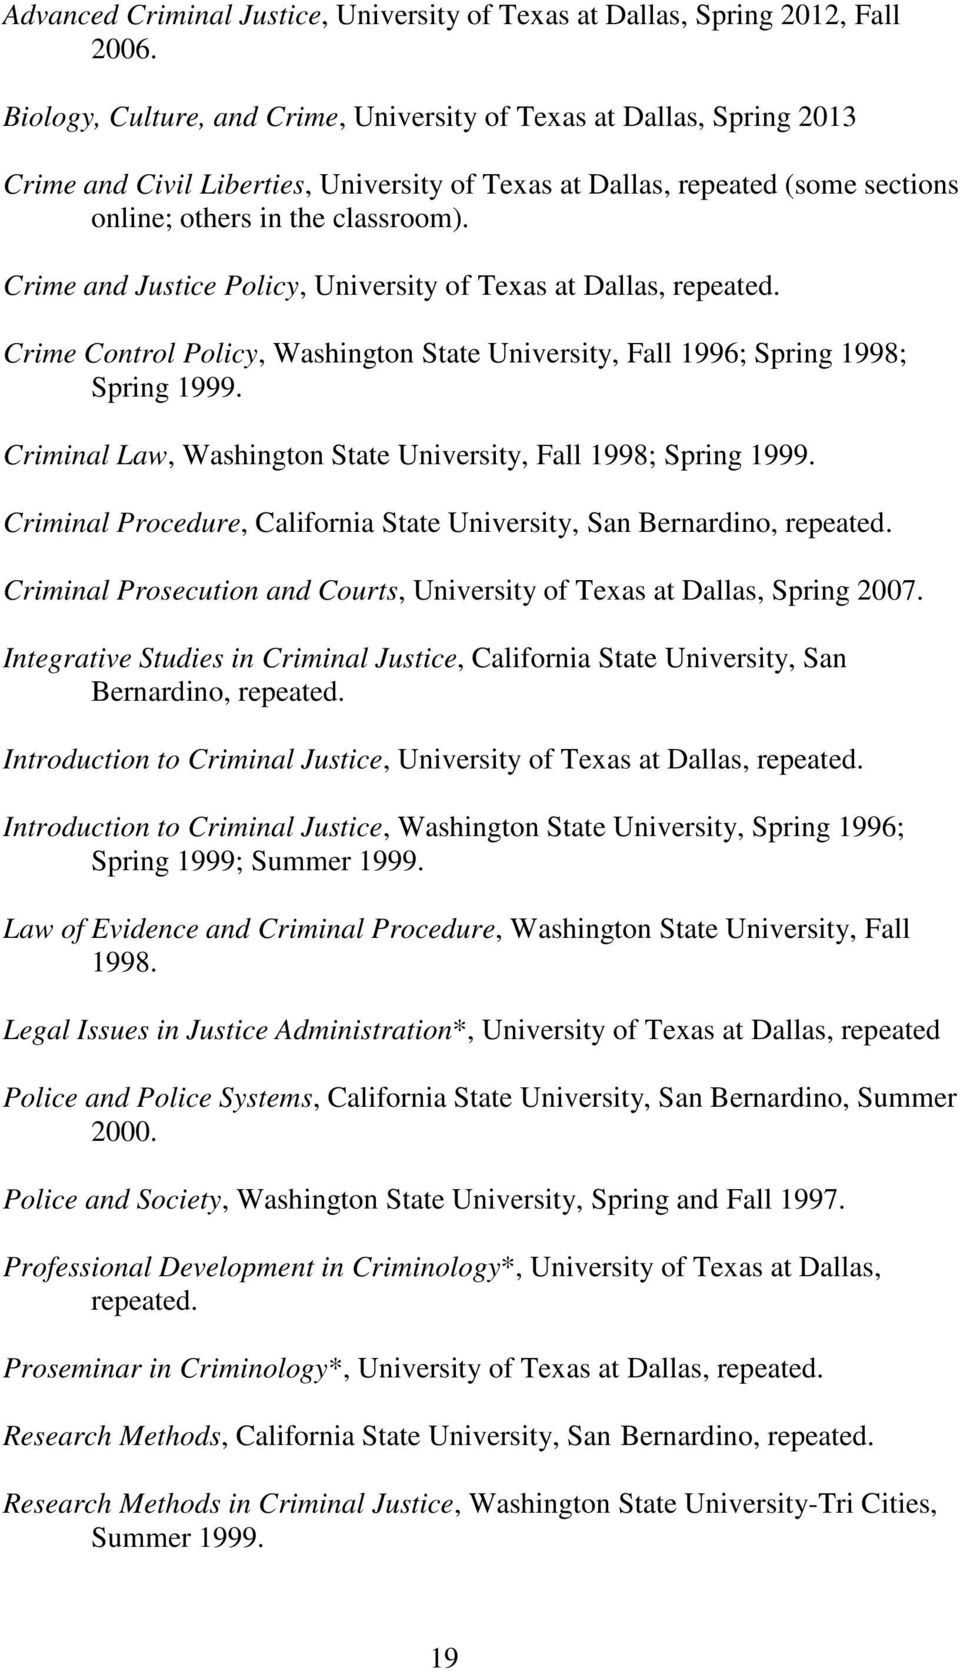 Crime and Justice Policy, University of Texas at Dallas, repeated. Crime Control Policy, Washington State University, Fall 1996; Spring 1998; Spring 1999.